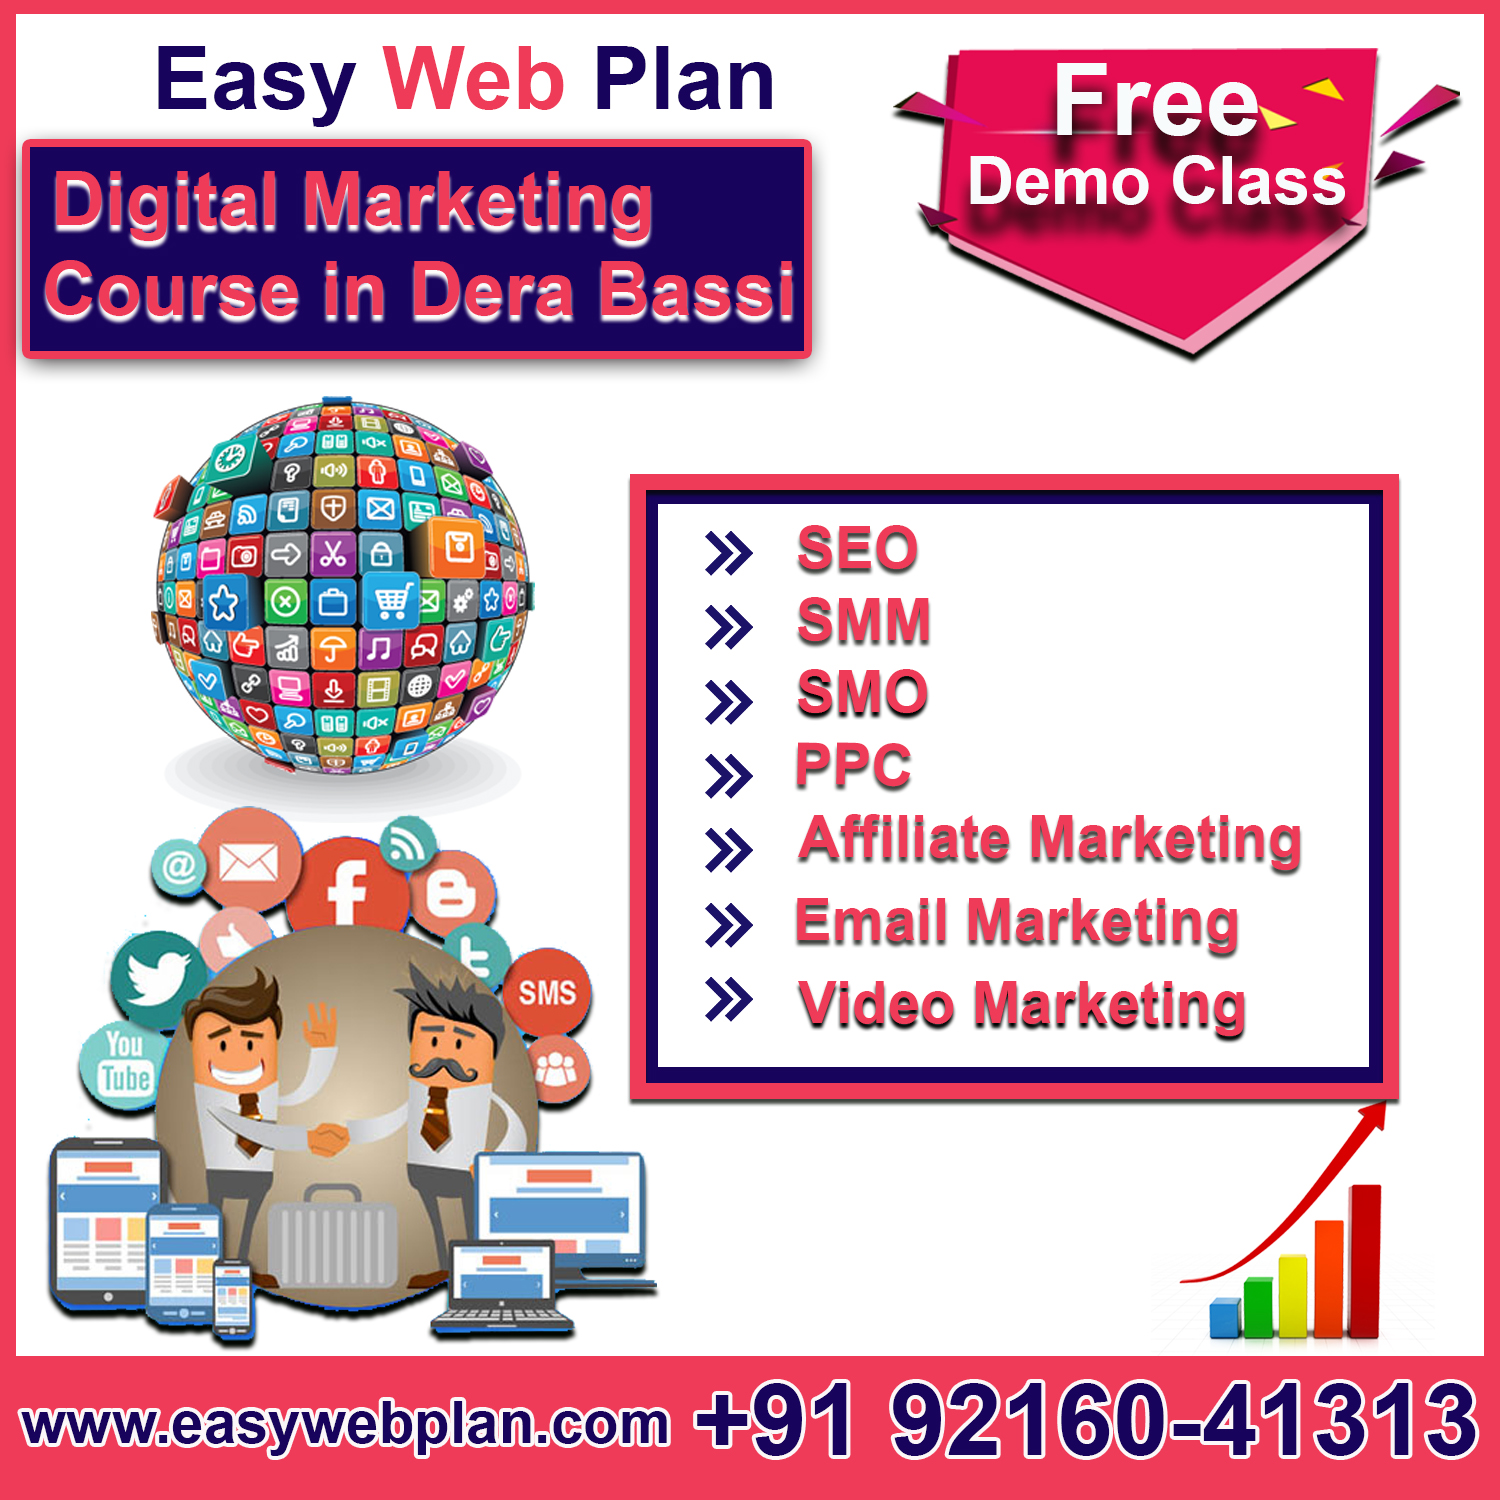 Digital Marketing Course in Derabassi